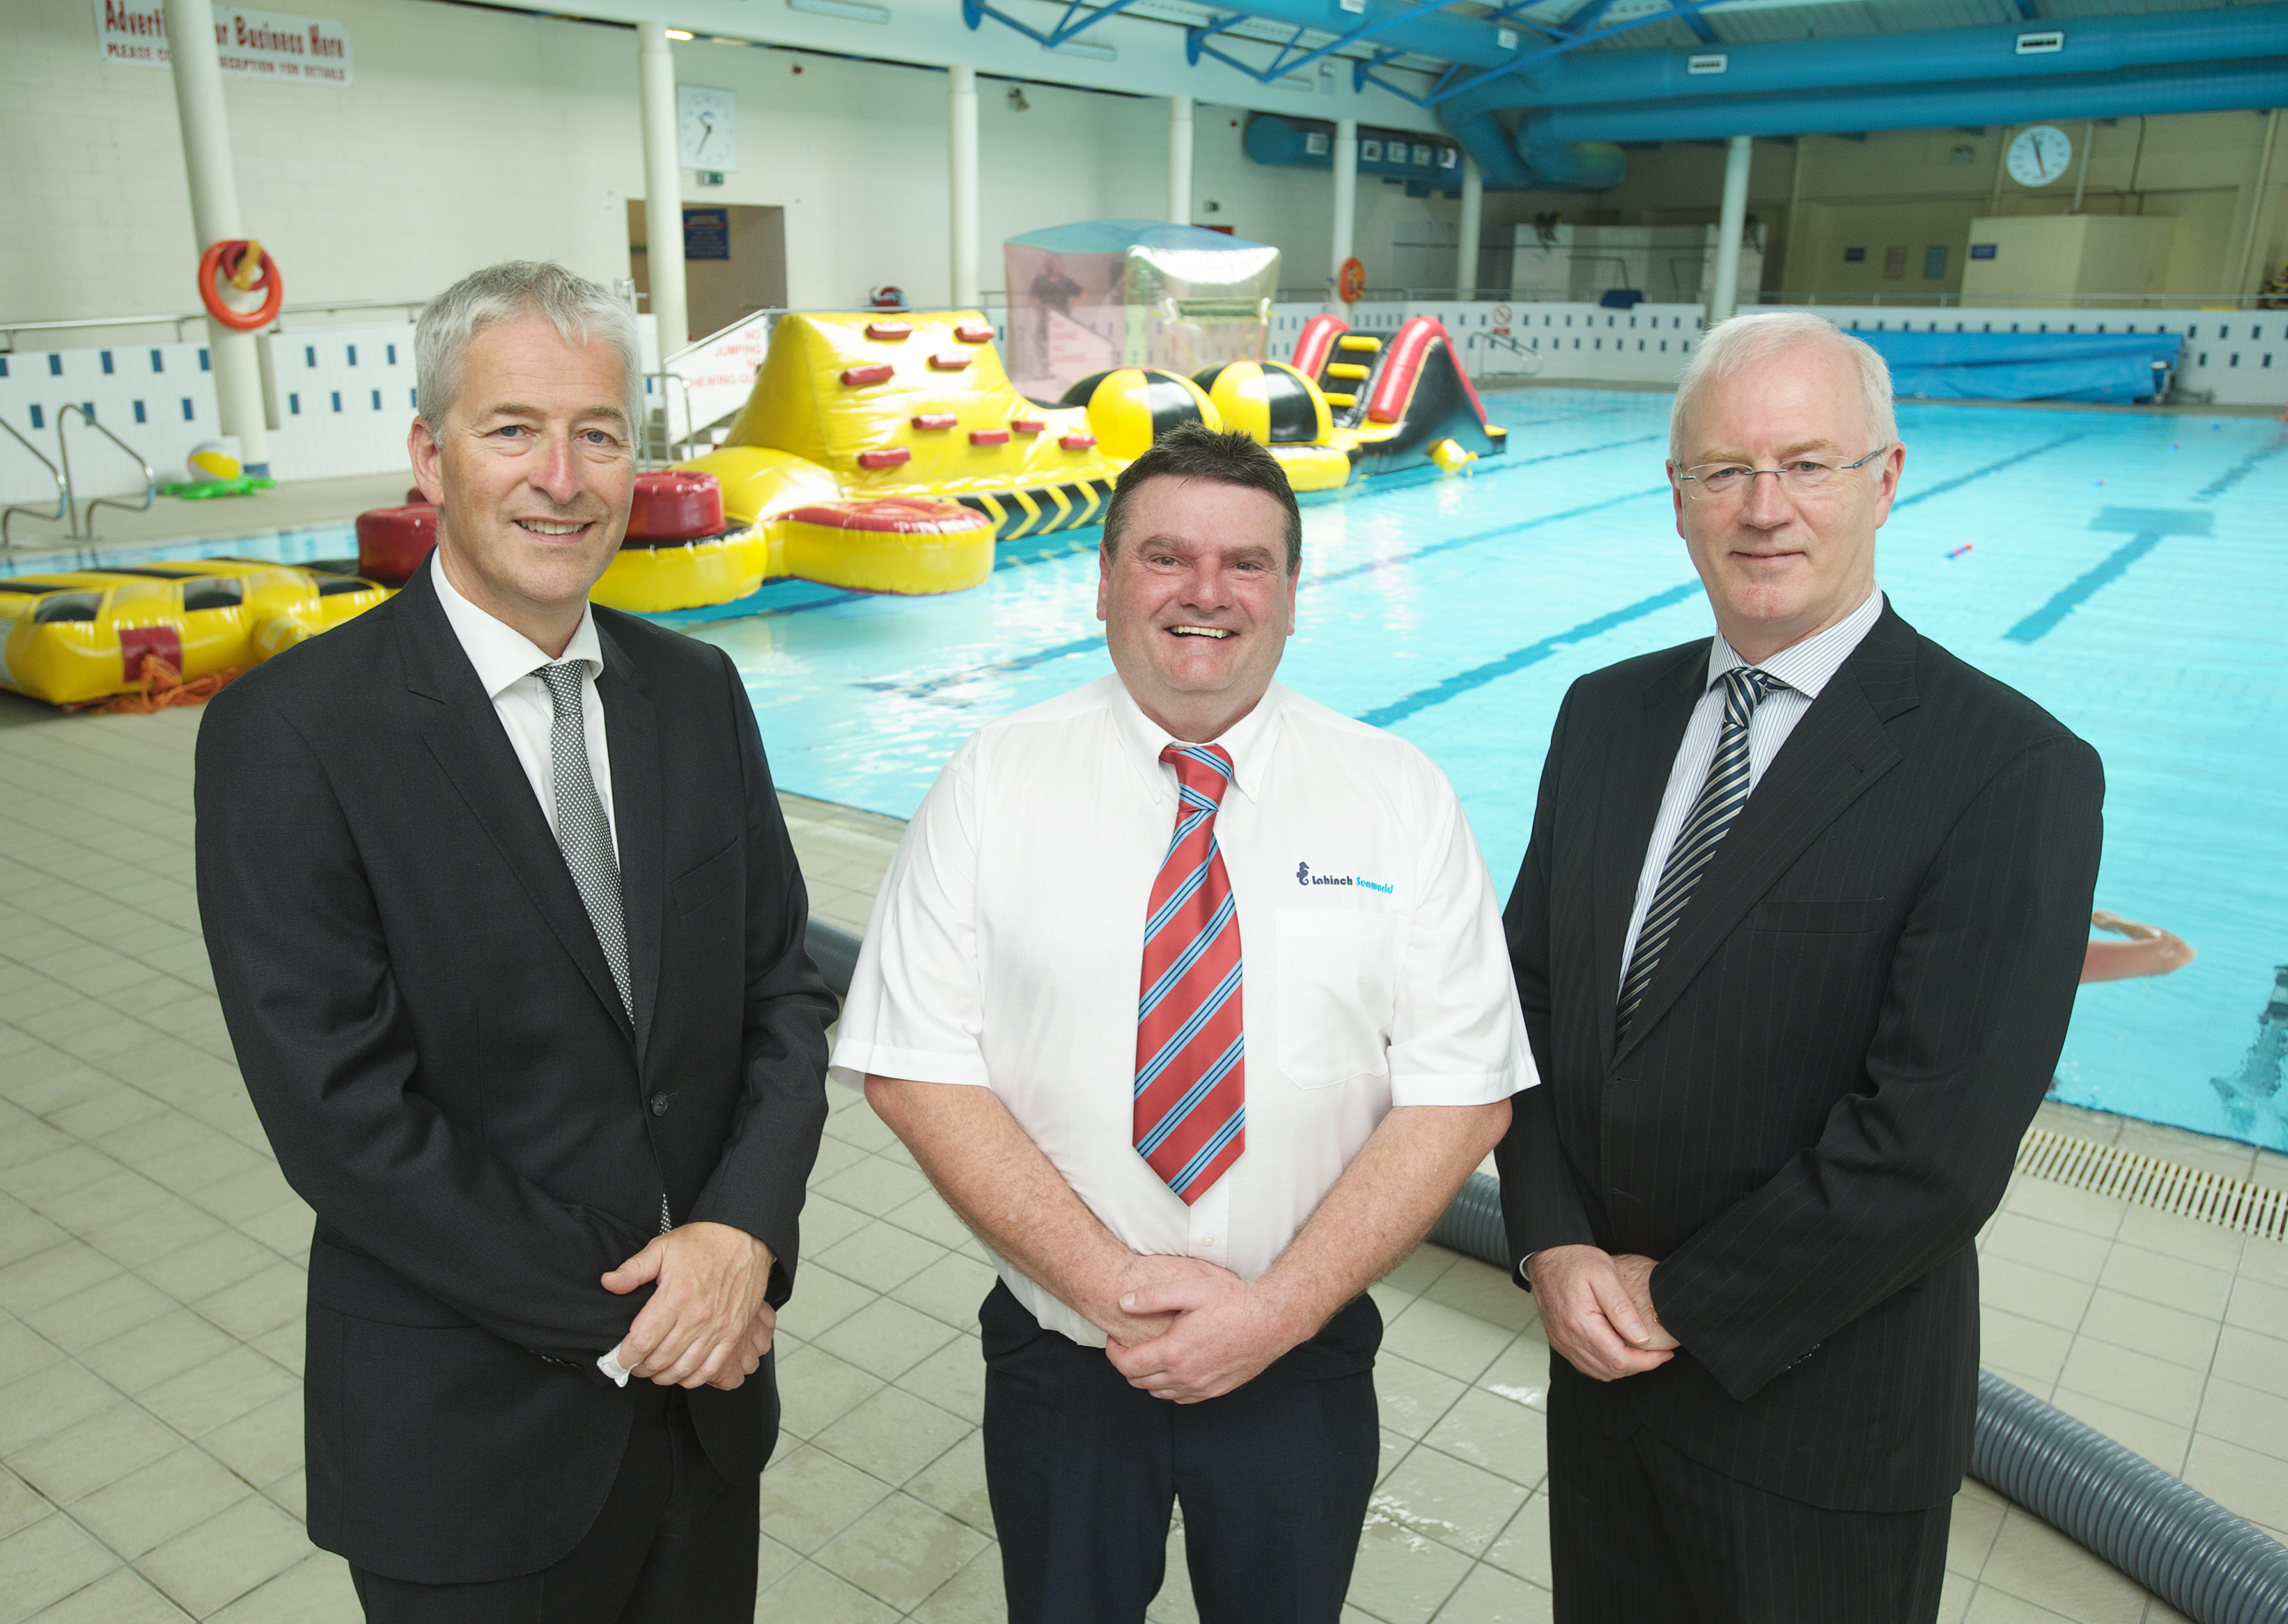 Photographed at Lahinch Seaworld are John Sheehy, Head of Claims and Senior Executive Liberty Insurance and John McDevitt, Marsh Brokers with Joe Garrihy, manager Lahinch Seaworld, centre.